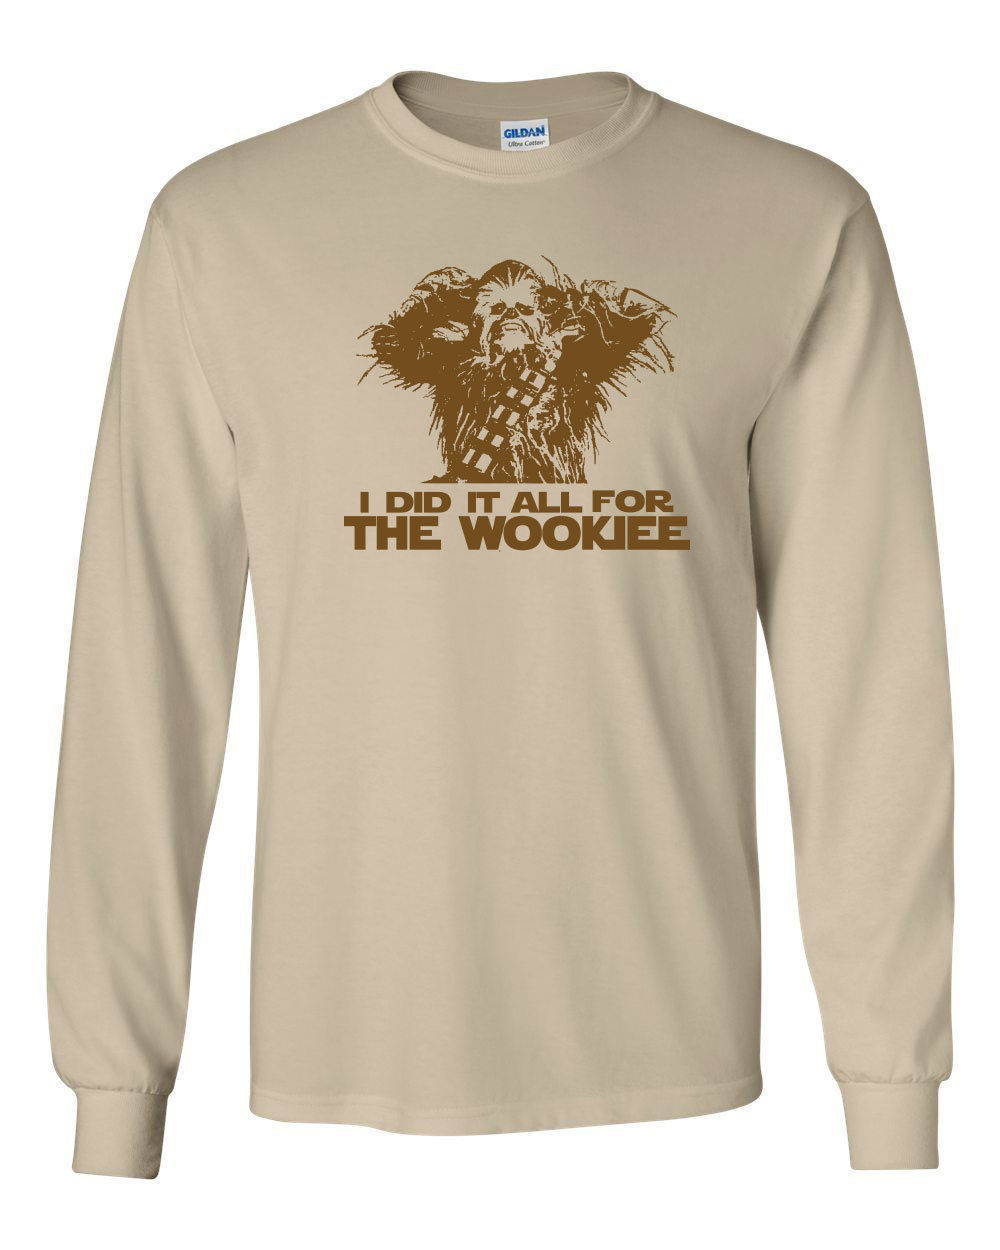 Primary image for 074 I did it all for the Wookiee Long Sleeve Shirt funny chewbacca rude wars new